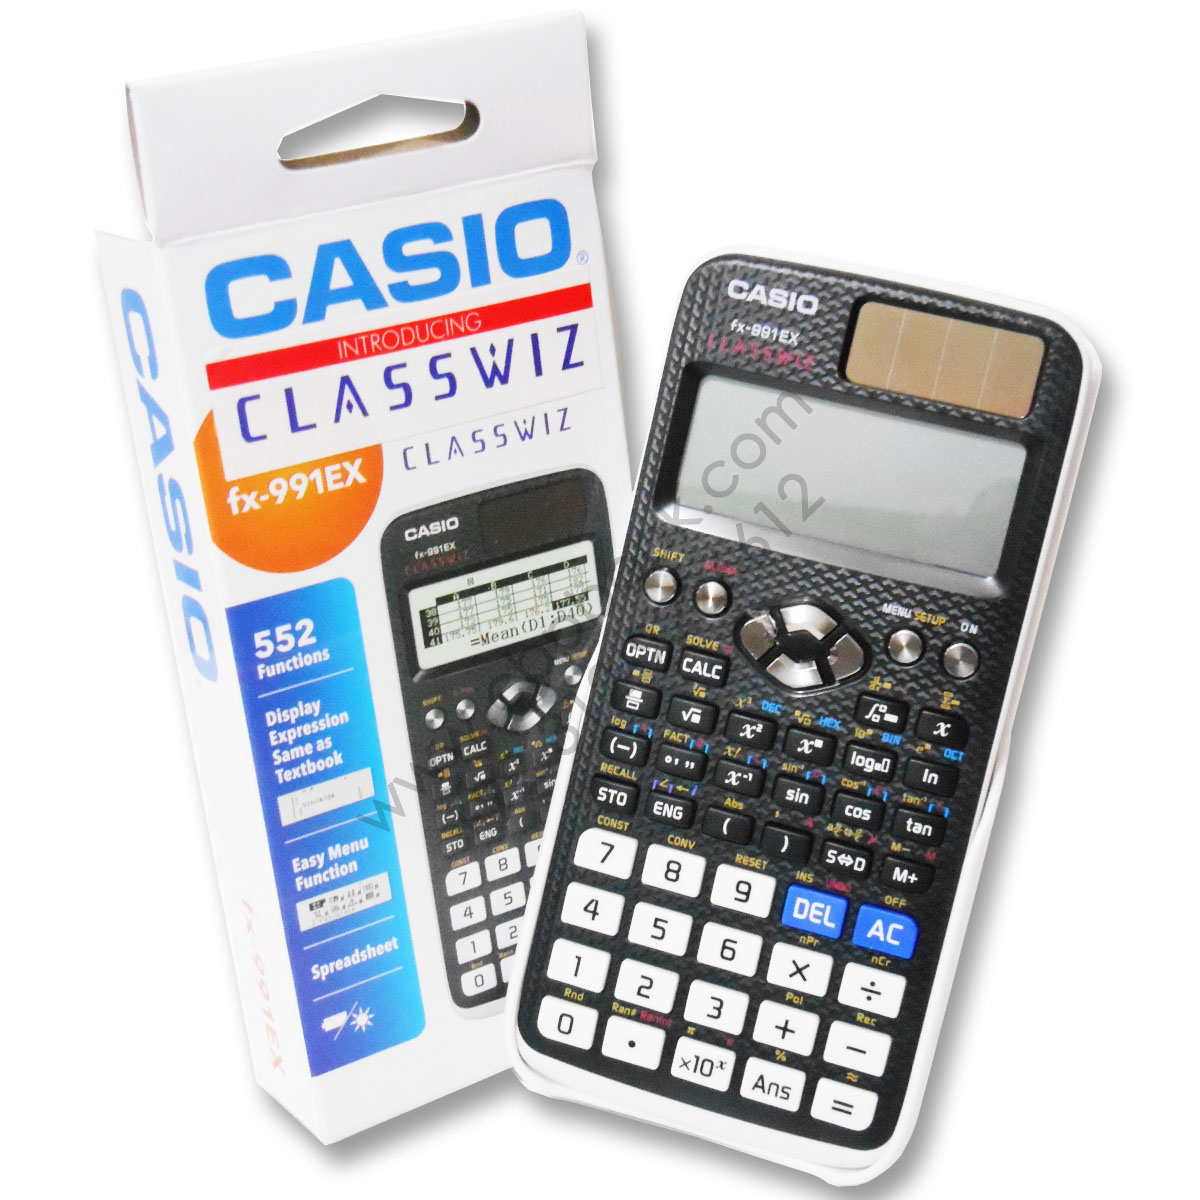 casio scientific calculator fx-991ex classwiz original